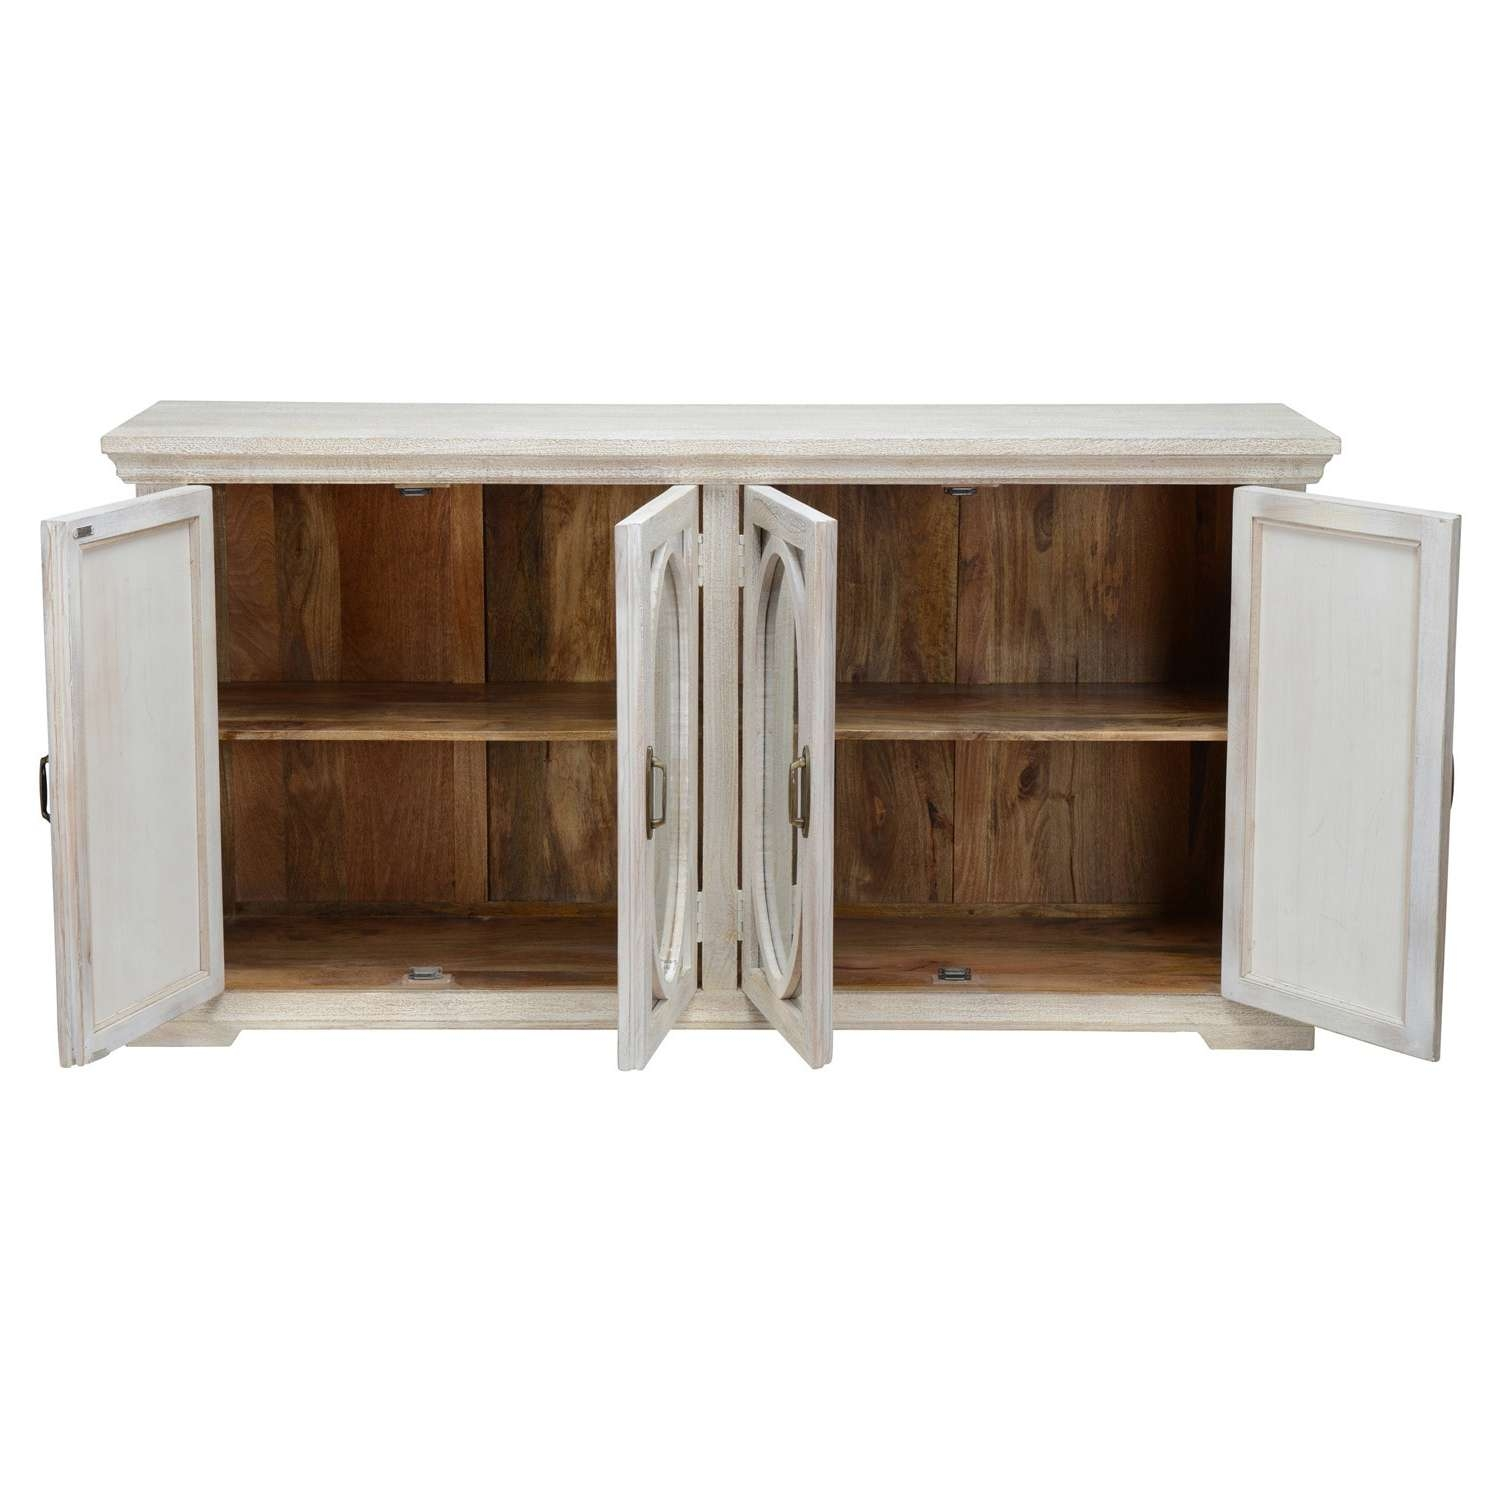 Manchester Wood Mirrored 70 Inch Sideboardkosas Home – Free For 70 Inch Sideboards (View 5 of 20)